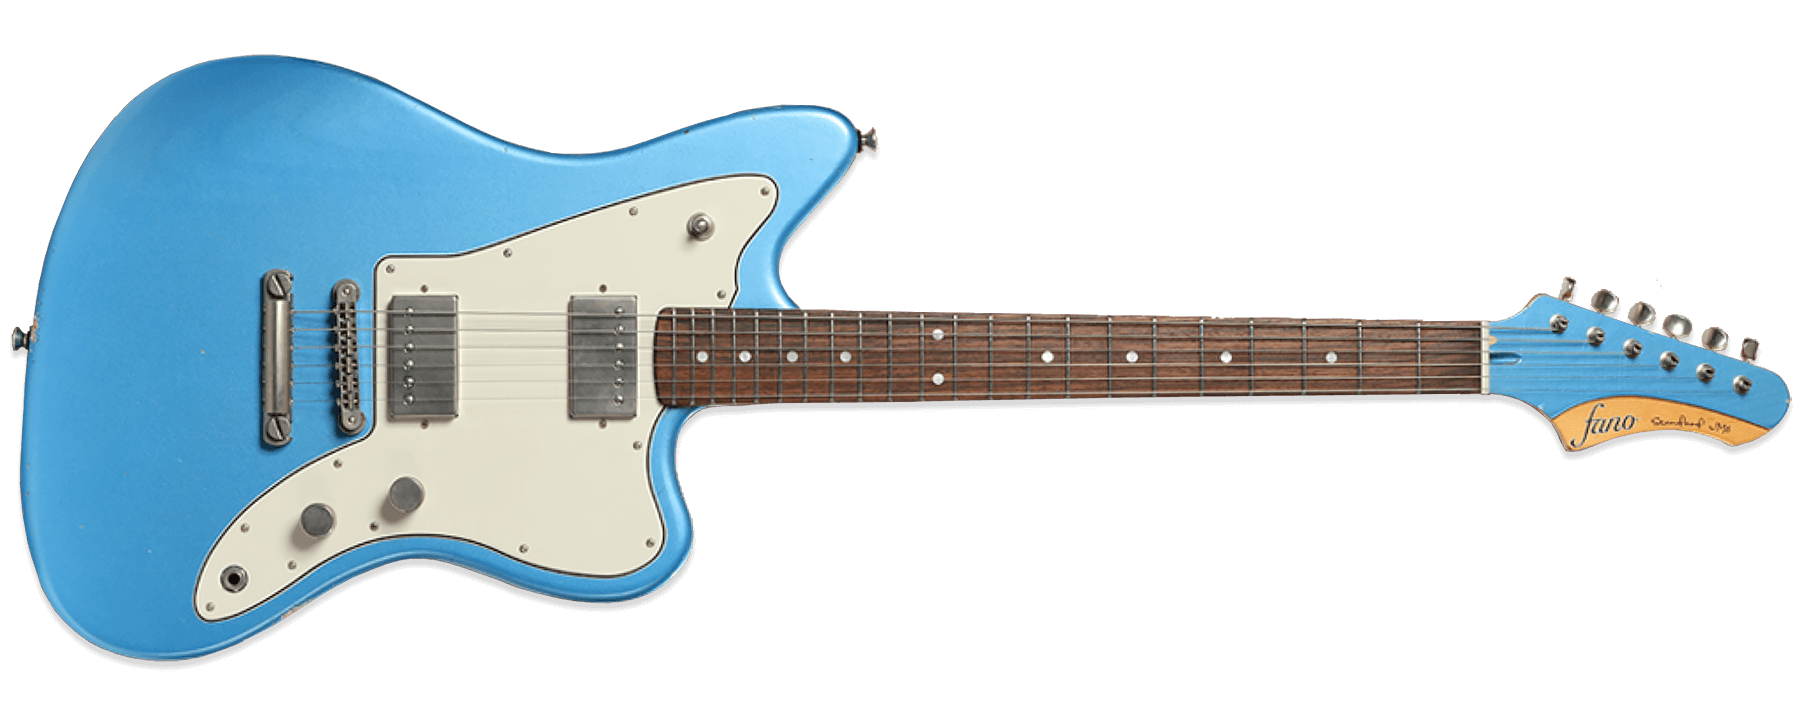 Fano Standard JM6 Ice Blue Metallic